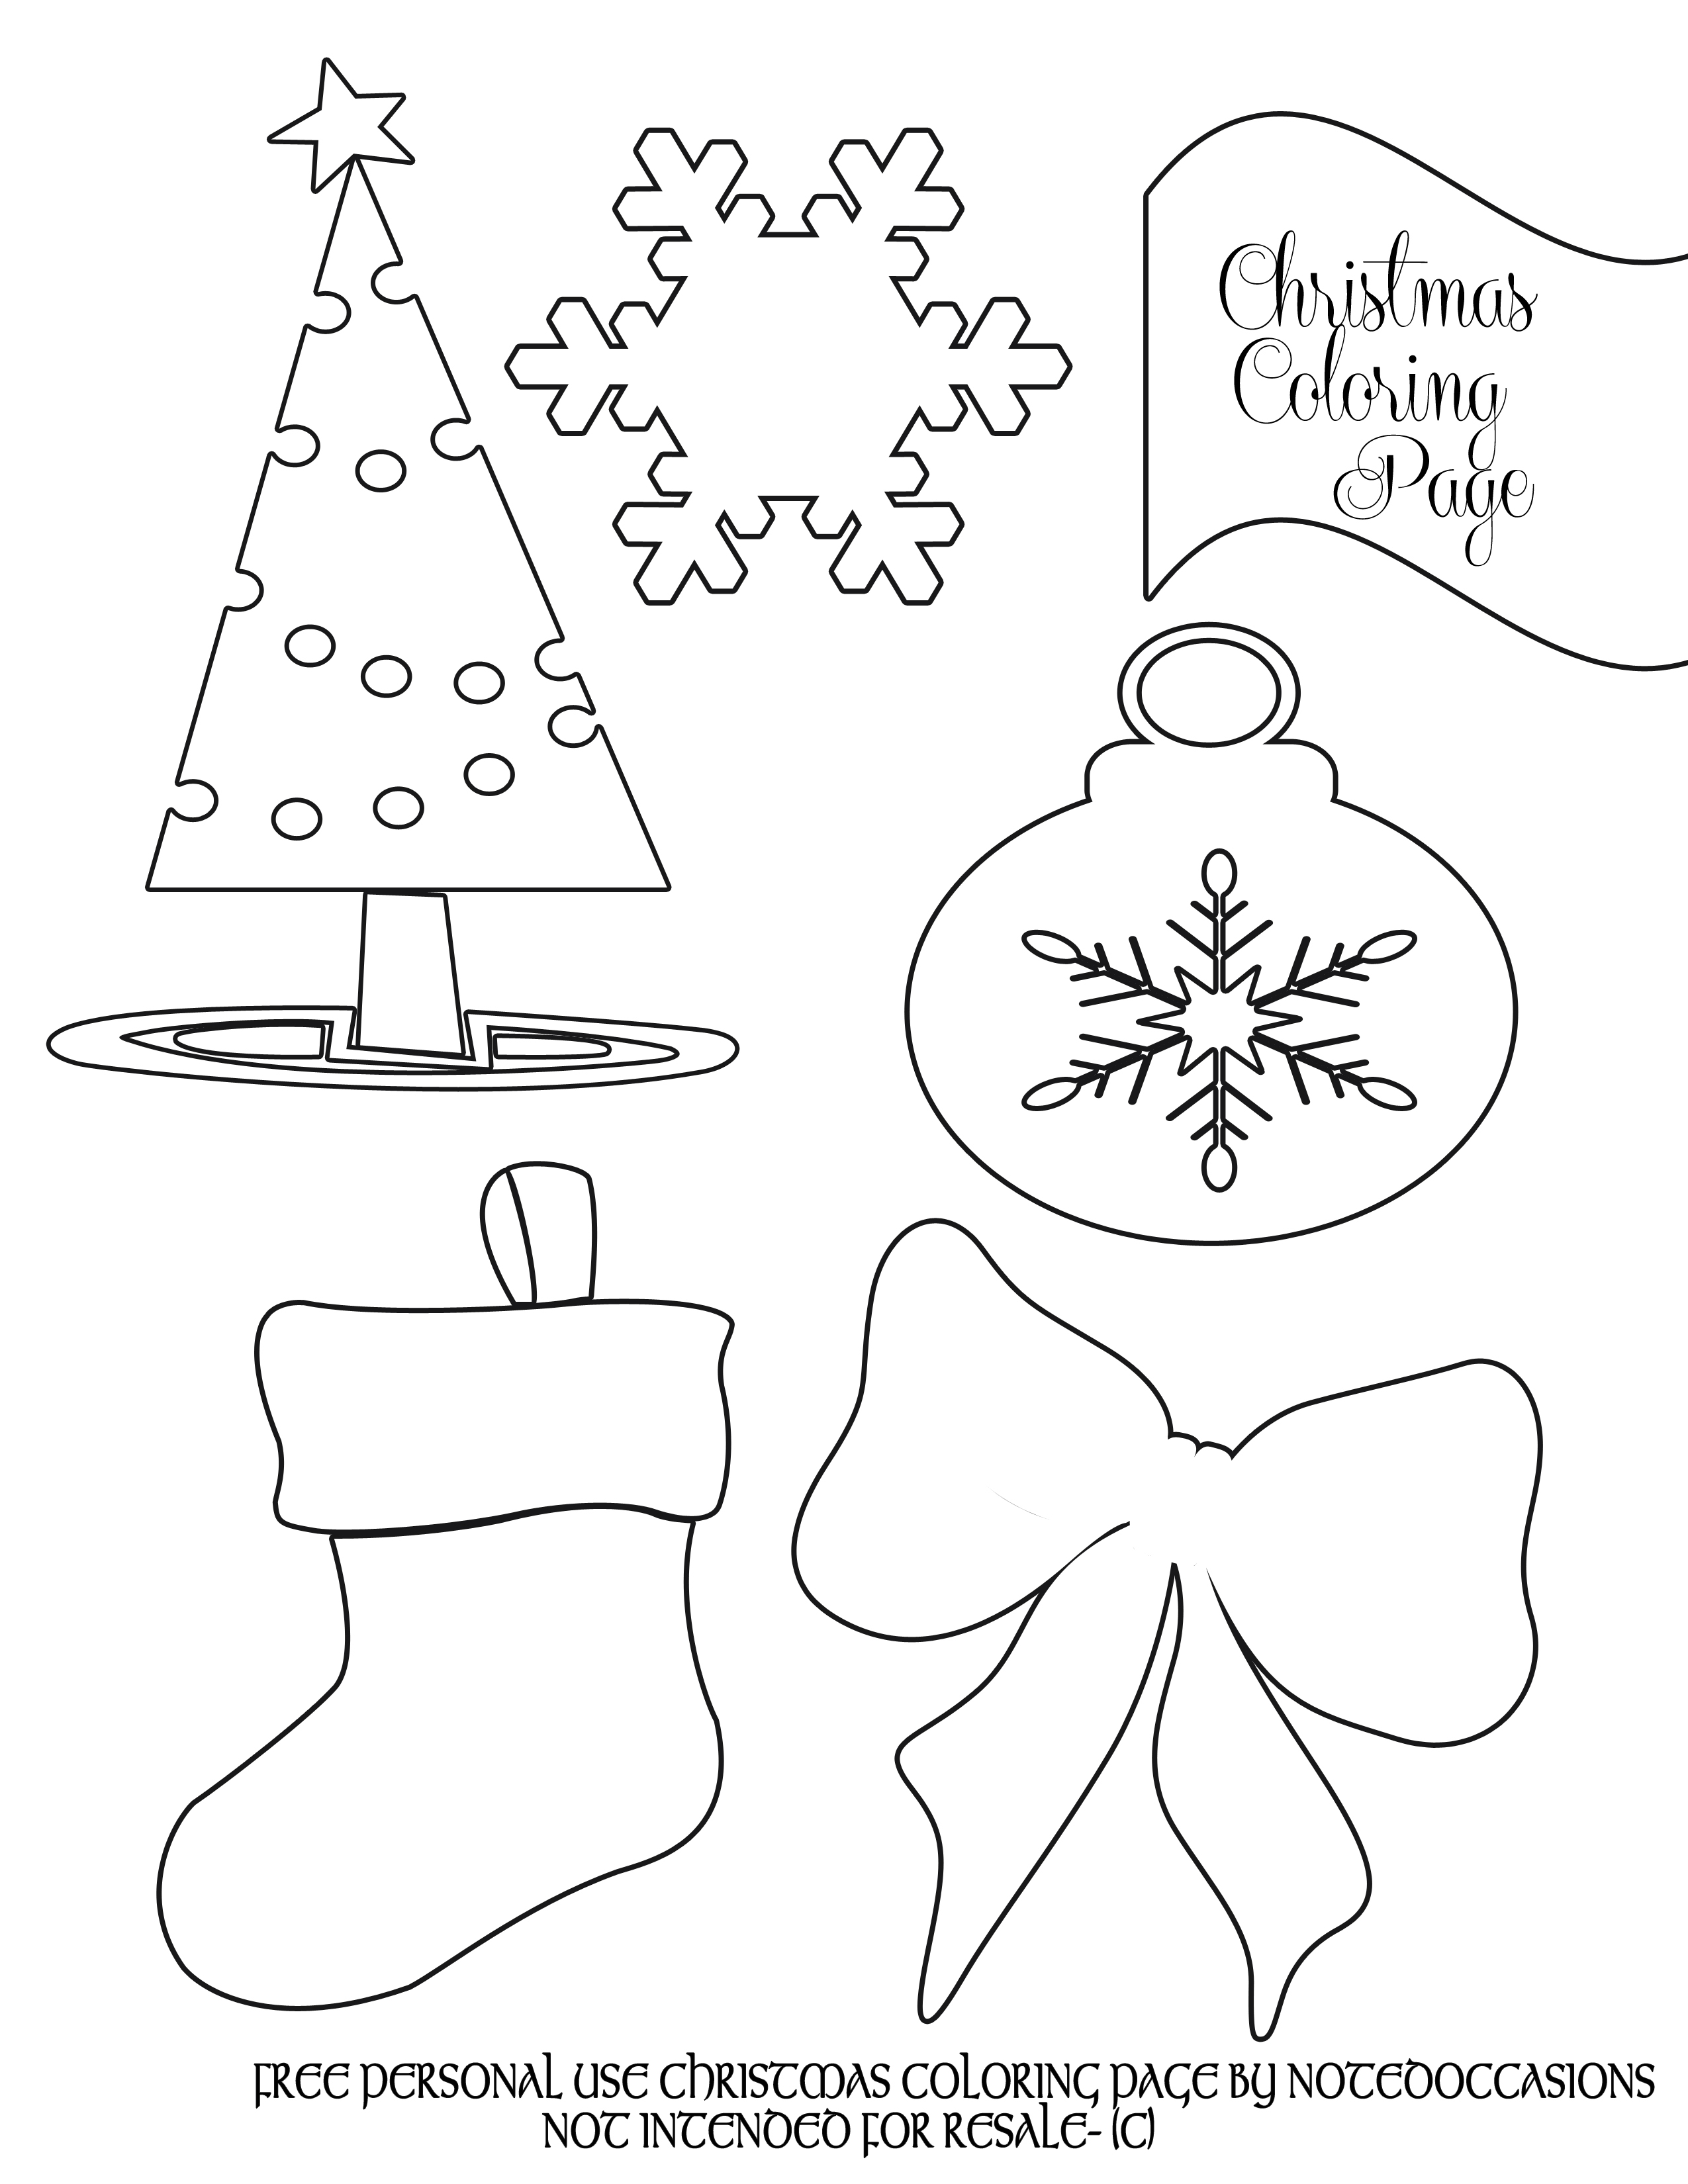 27+ Wonderful Image of Christmas Coloring Pages To Print Free